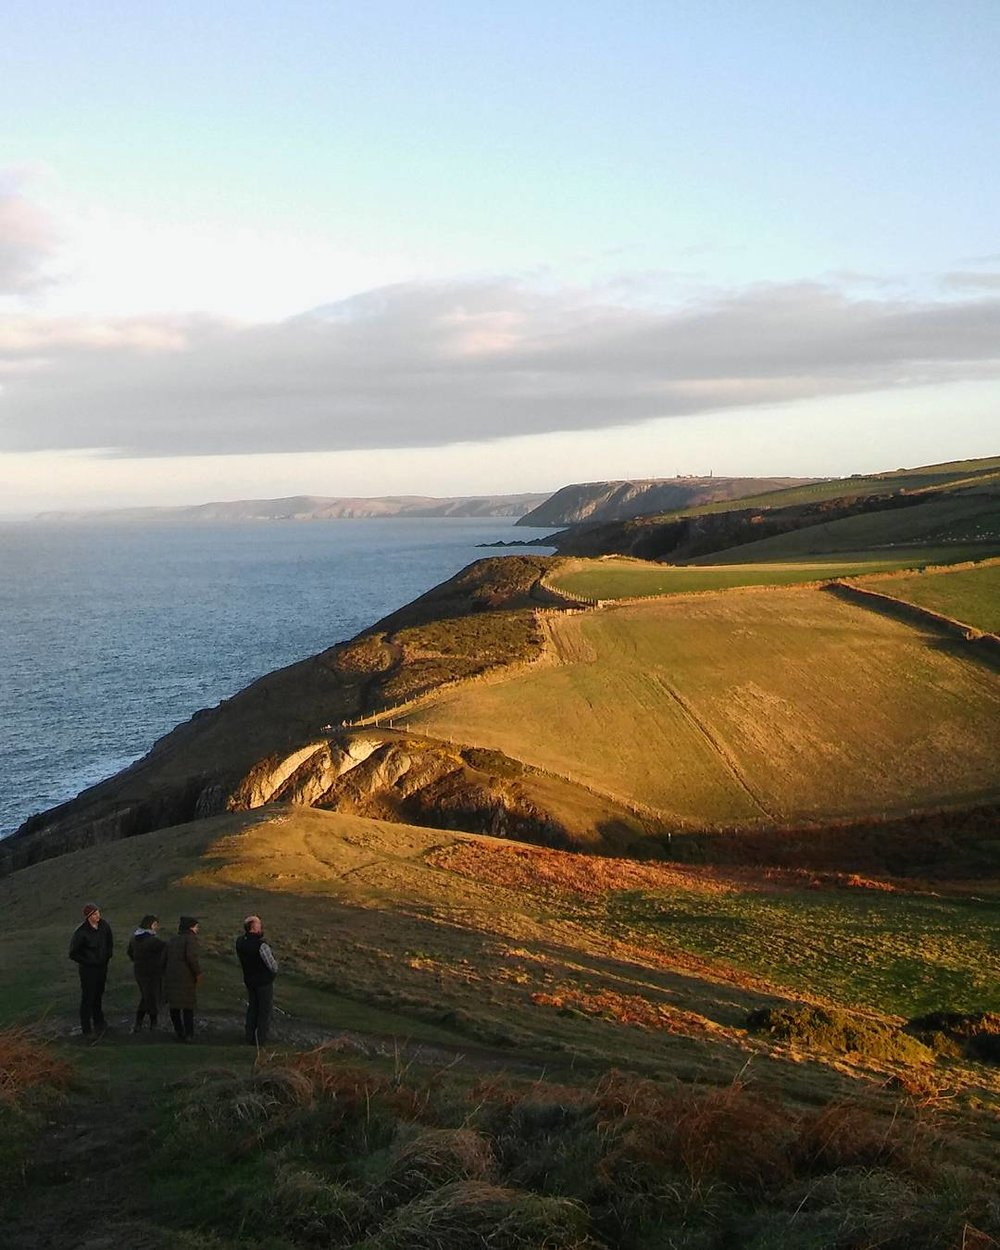 Admiring the view from the hill at Mwnt.